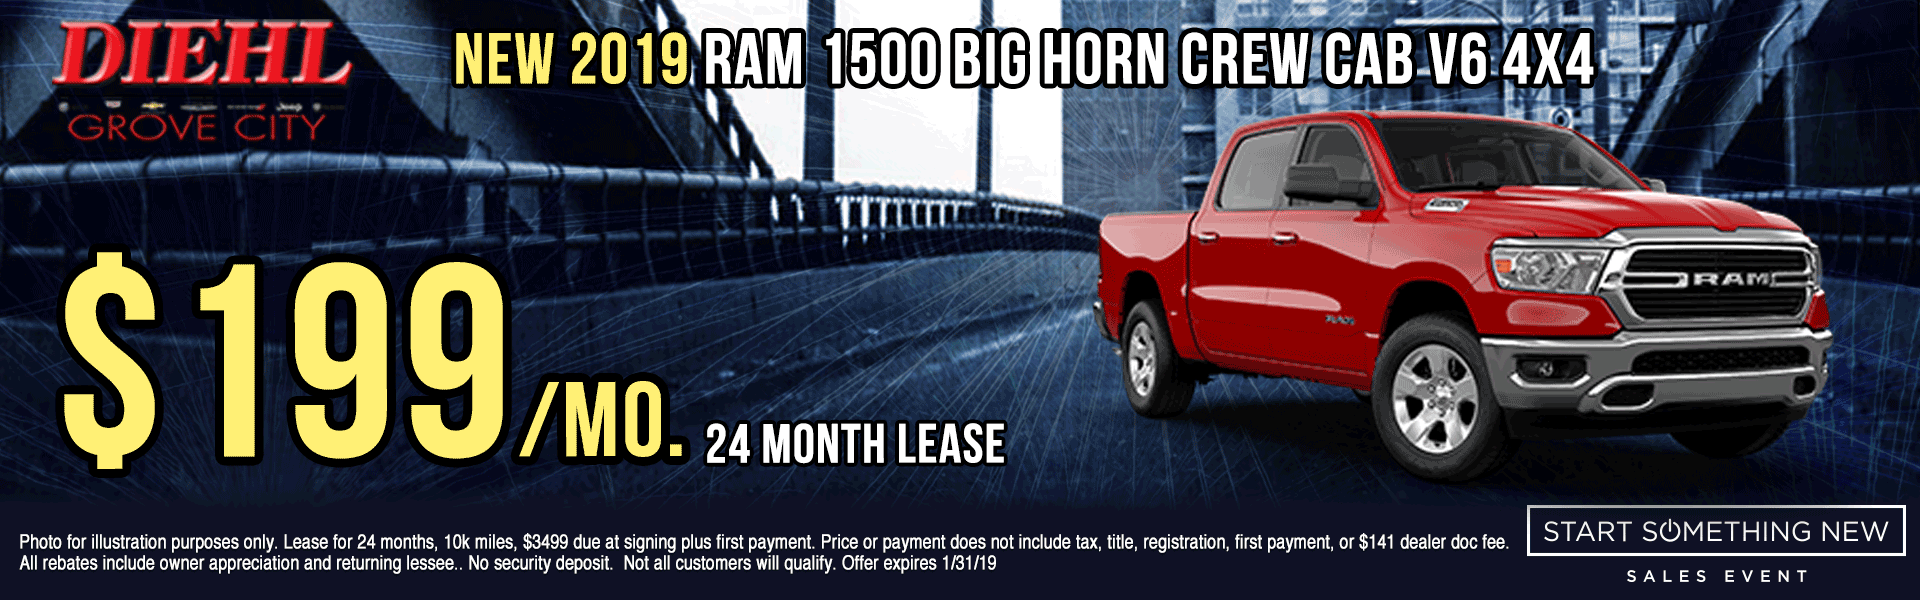 R628-2019-RAM-BIGHORN-CREW-CAB-4X4 Start Something New Sales Event Chrysler Specials Dodge Specials Jeep Specials RAM Specials grove city specials Diehl specials Diehl Automotive grove city lease specials